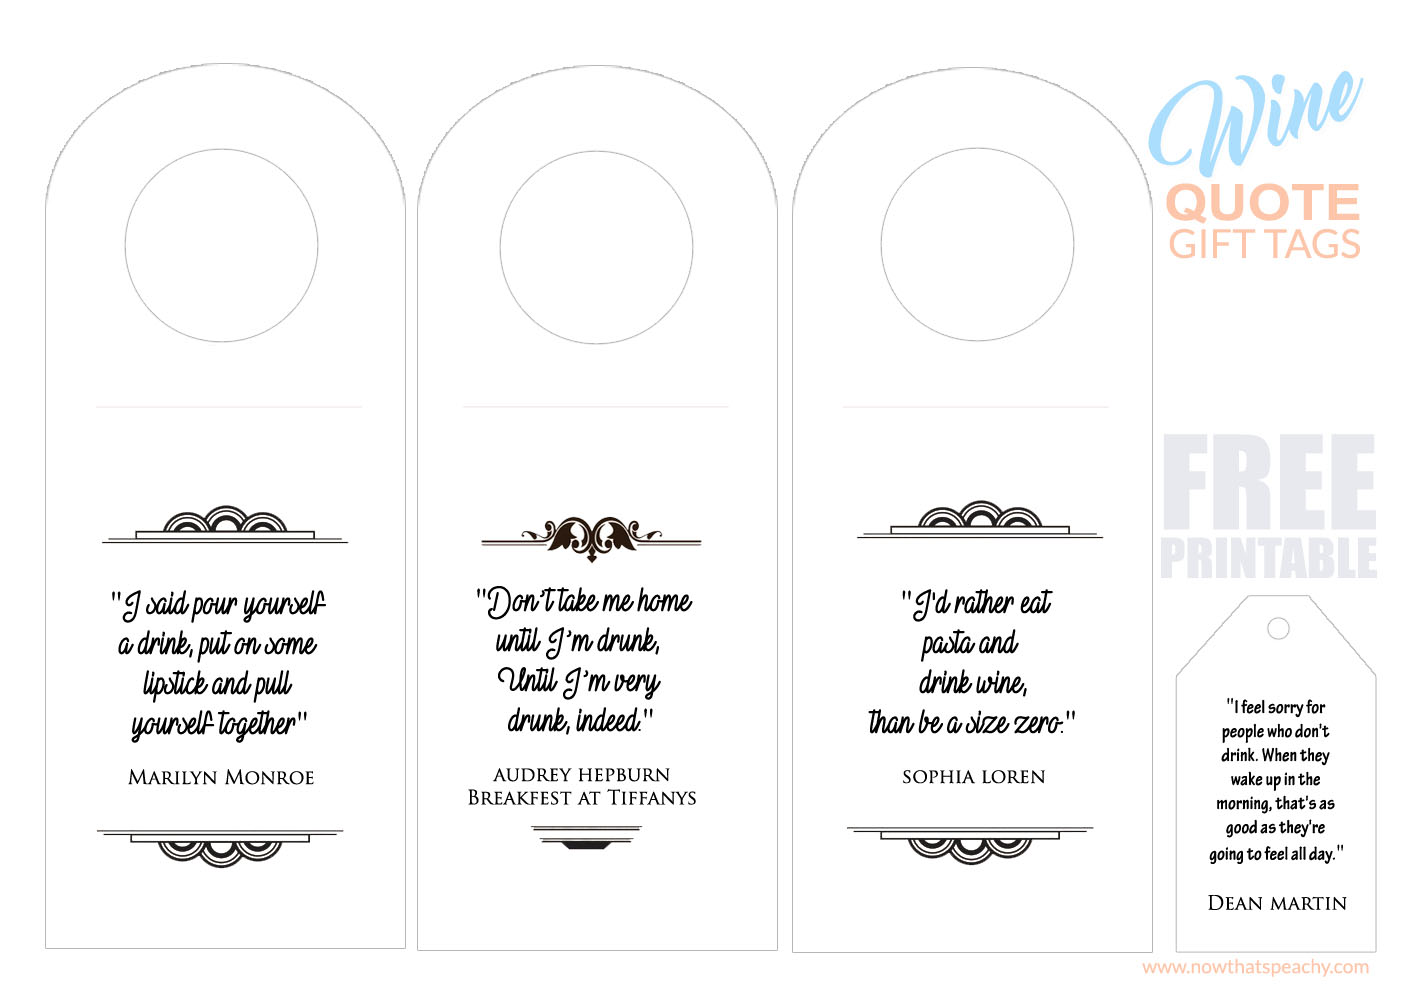 Celebrity Booze Quote Bottle gift tags | Free Printable | Now thats ...